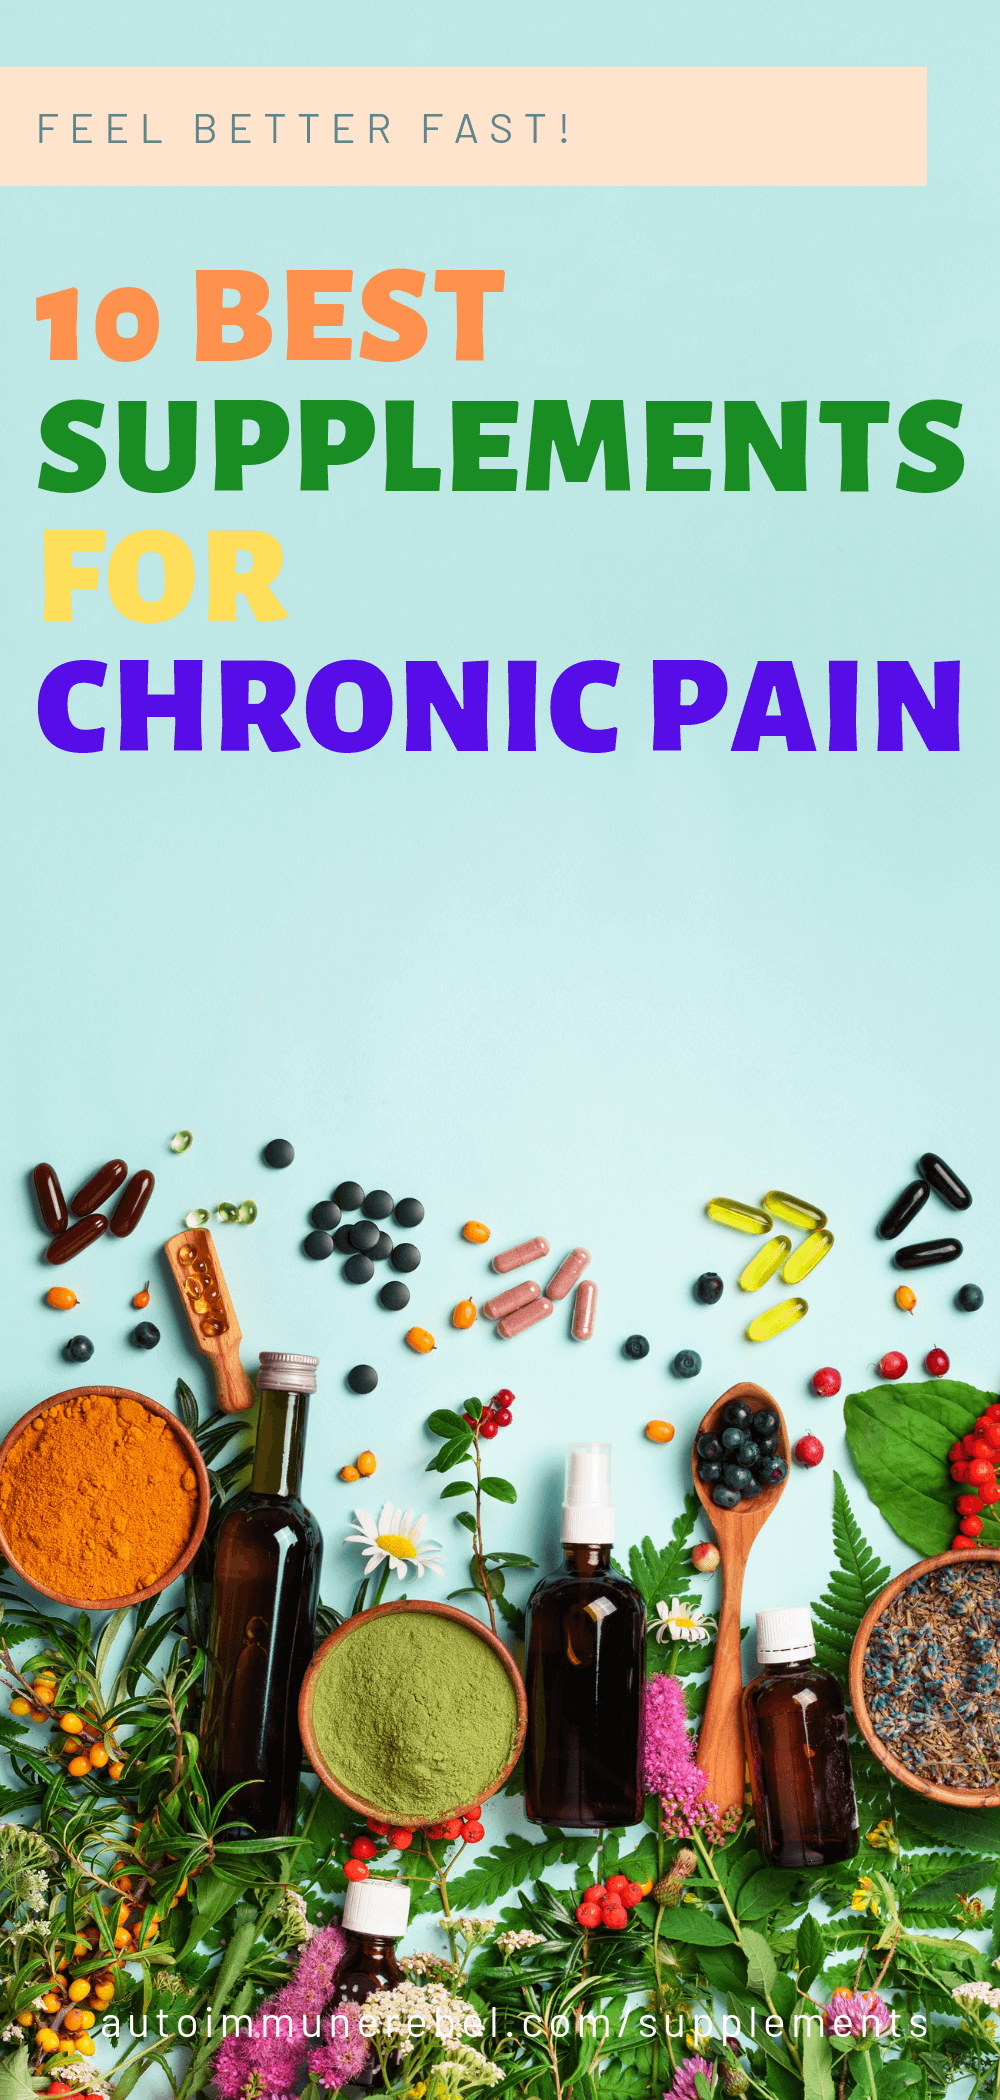 supplements-for-inflammation, supplements-for-autoimmune-disease, supplements-for-chronic-pain, natural remedies for chronic pain, natural remedies for inflammation, natural remedies for autoimmune disease, lupus, rheumatoid arthritis, sjogren's syndrome, crohns, ulcerative colitis